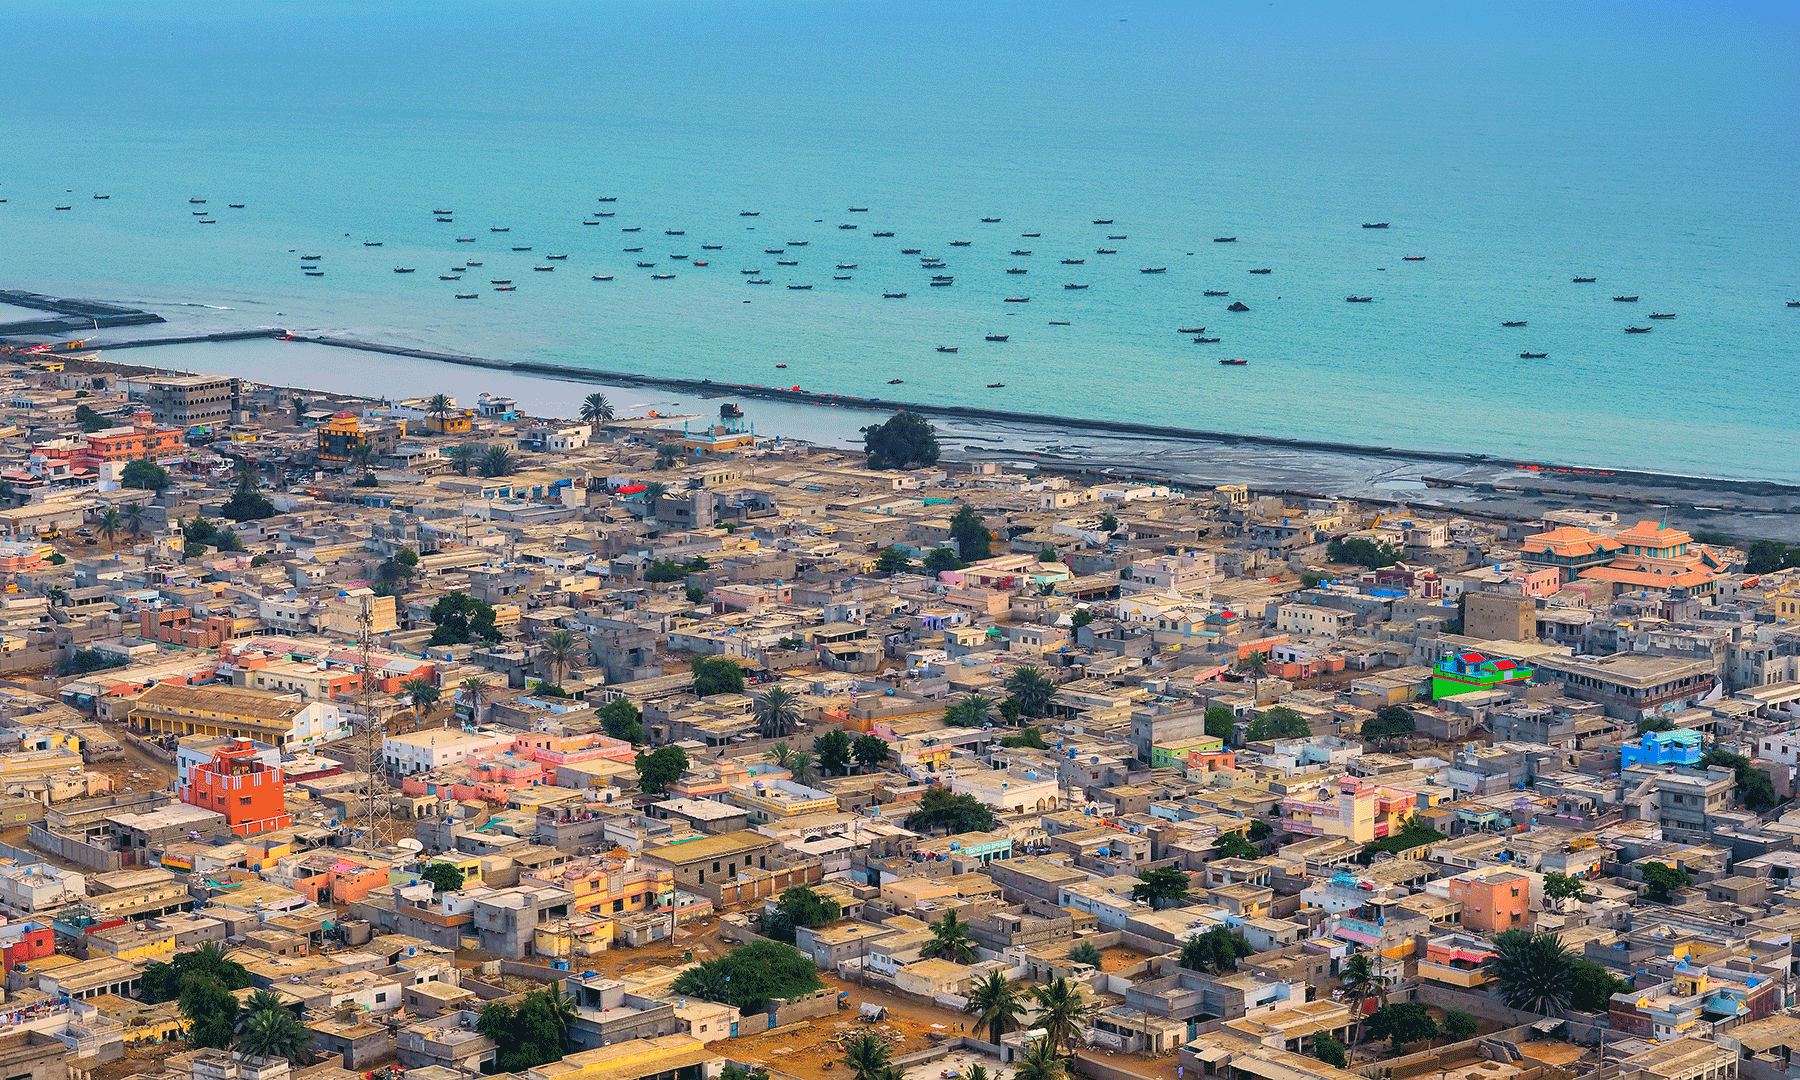 A view of Gwadar.